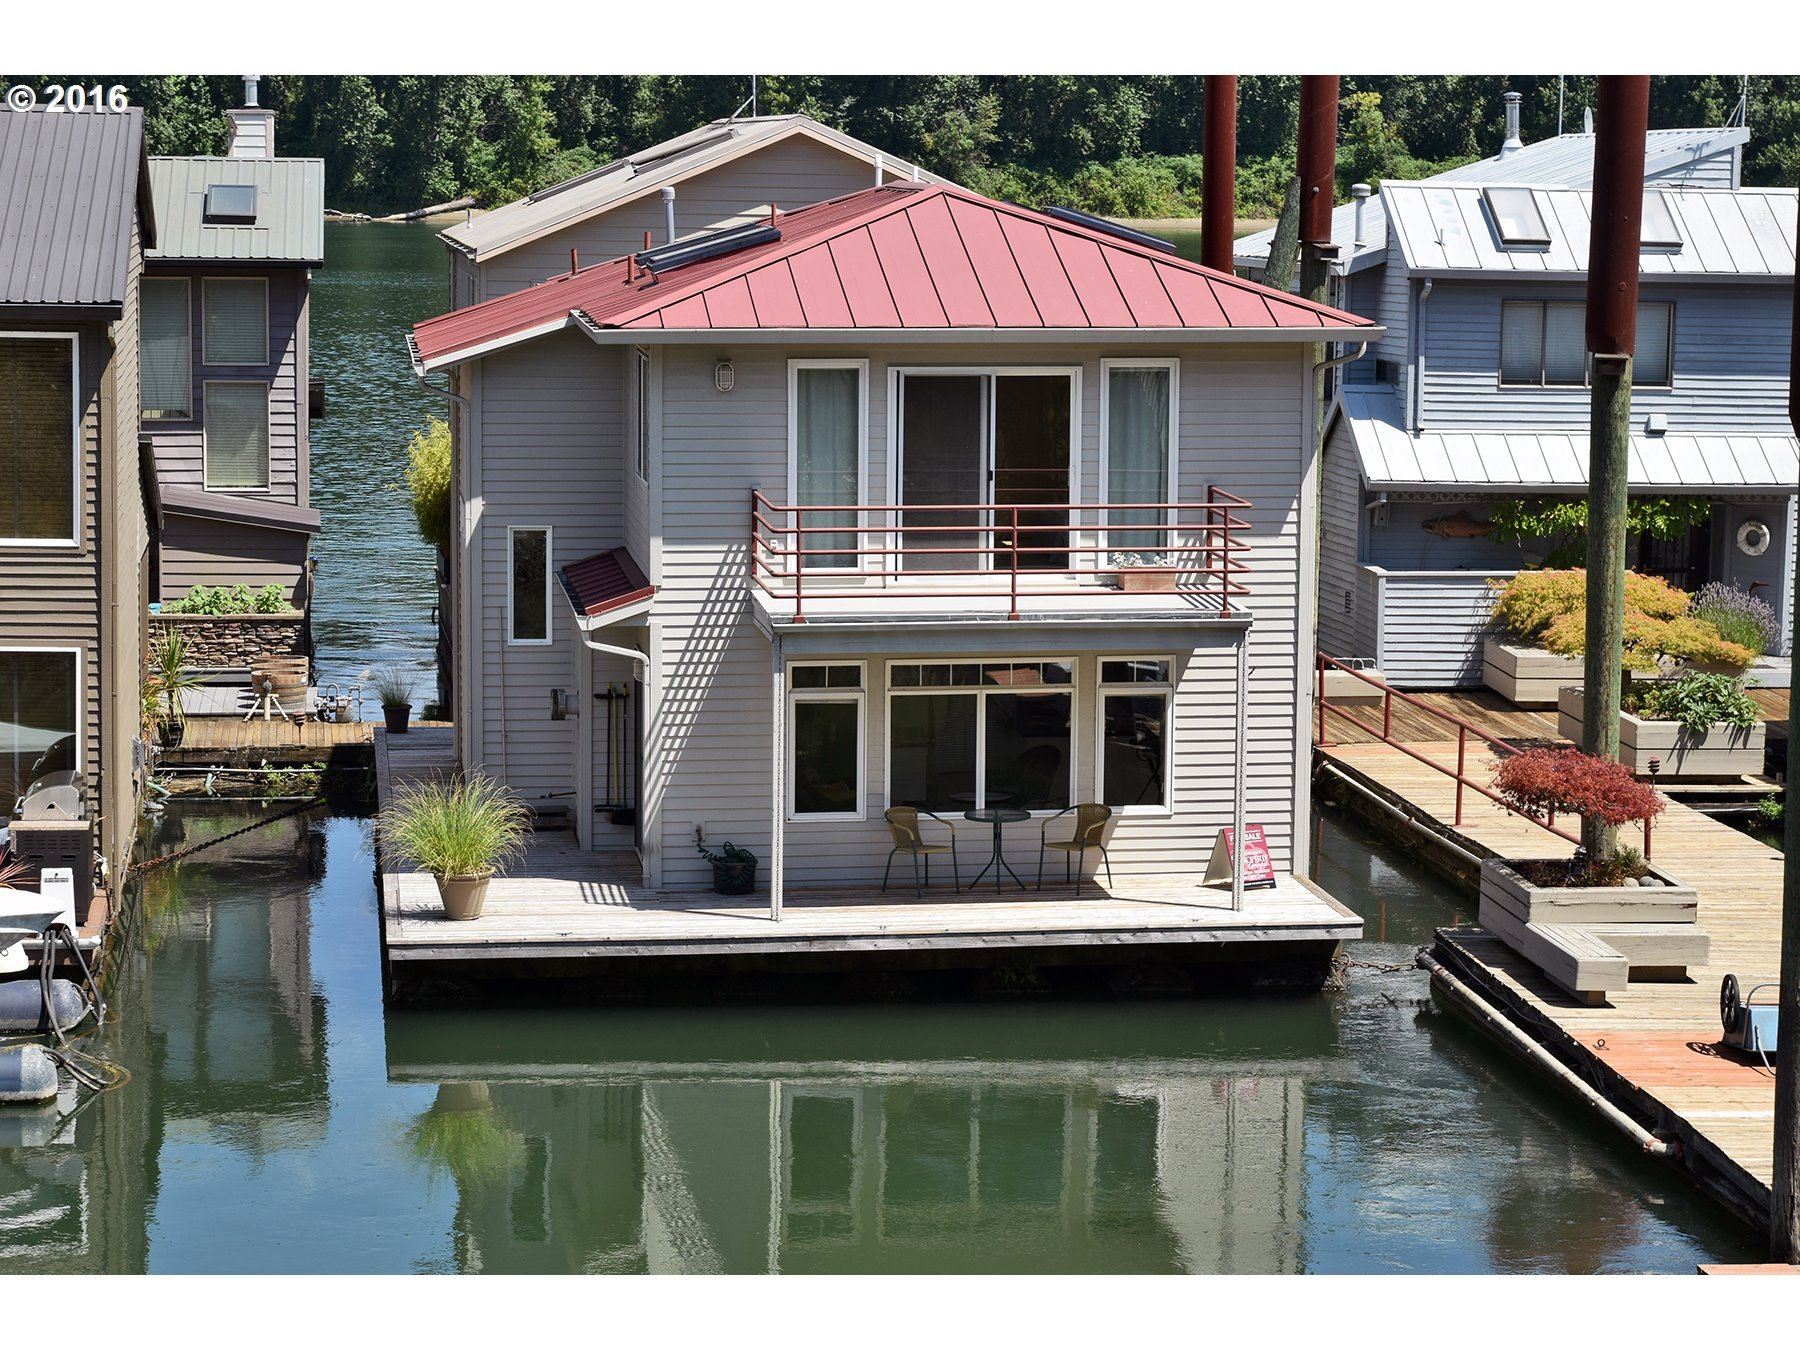 Residential for sale in portland oregon 16411652 for Floating homes portland